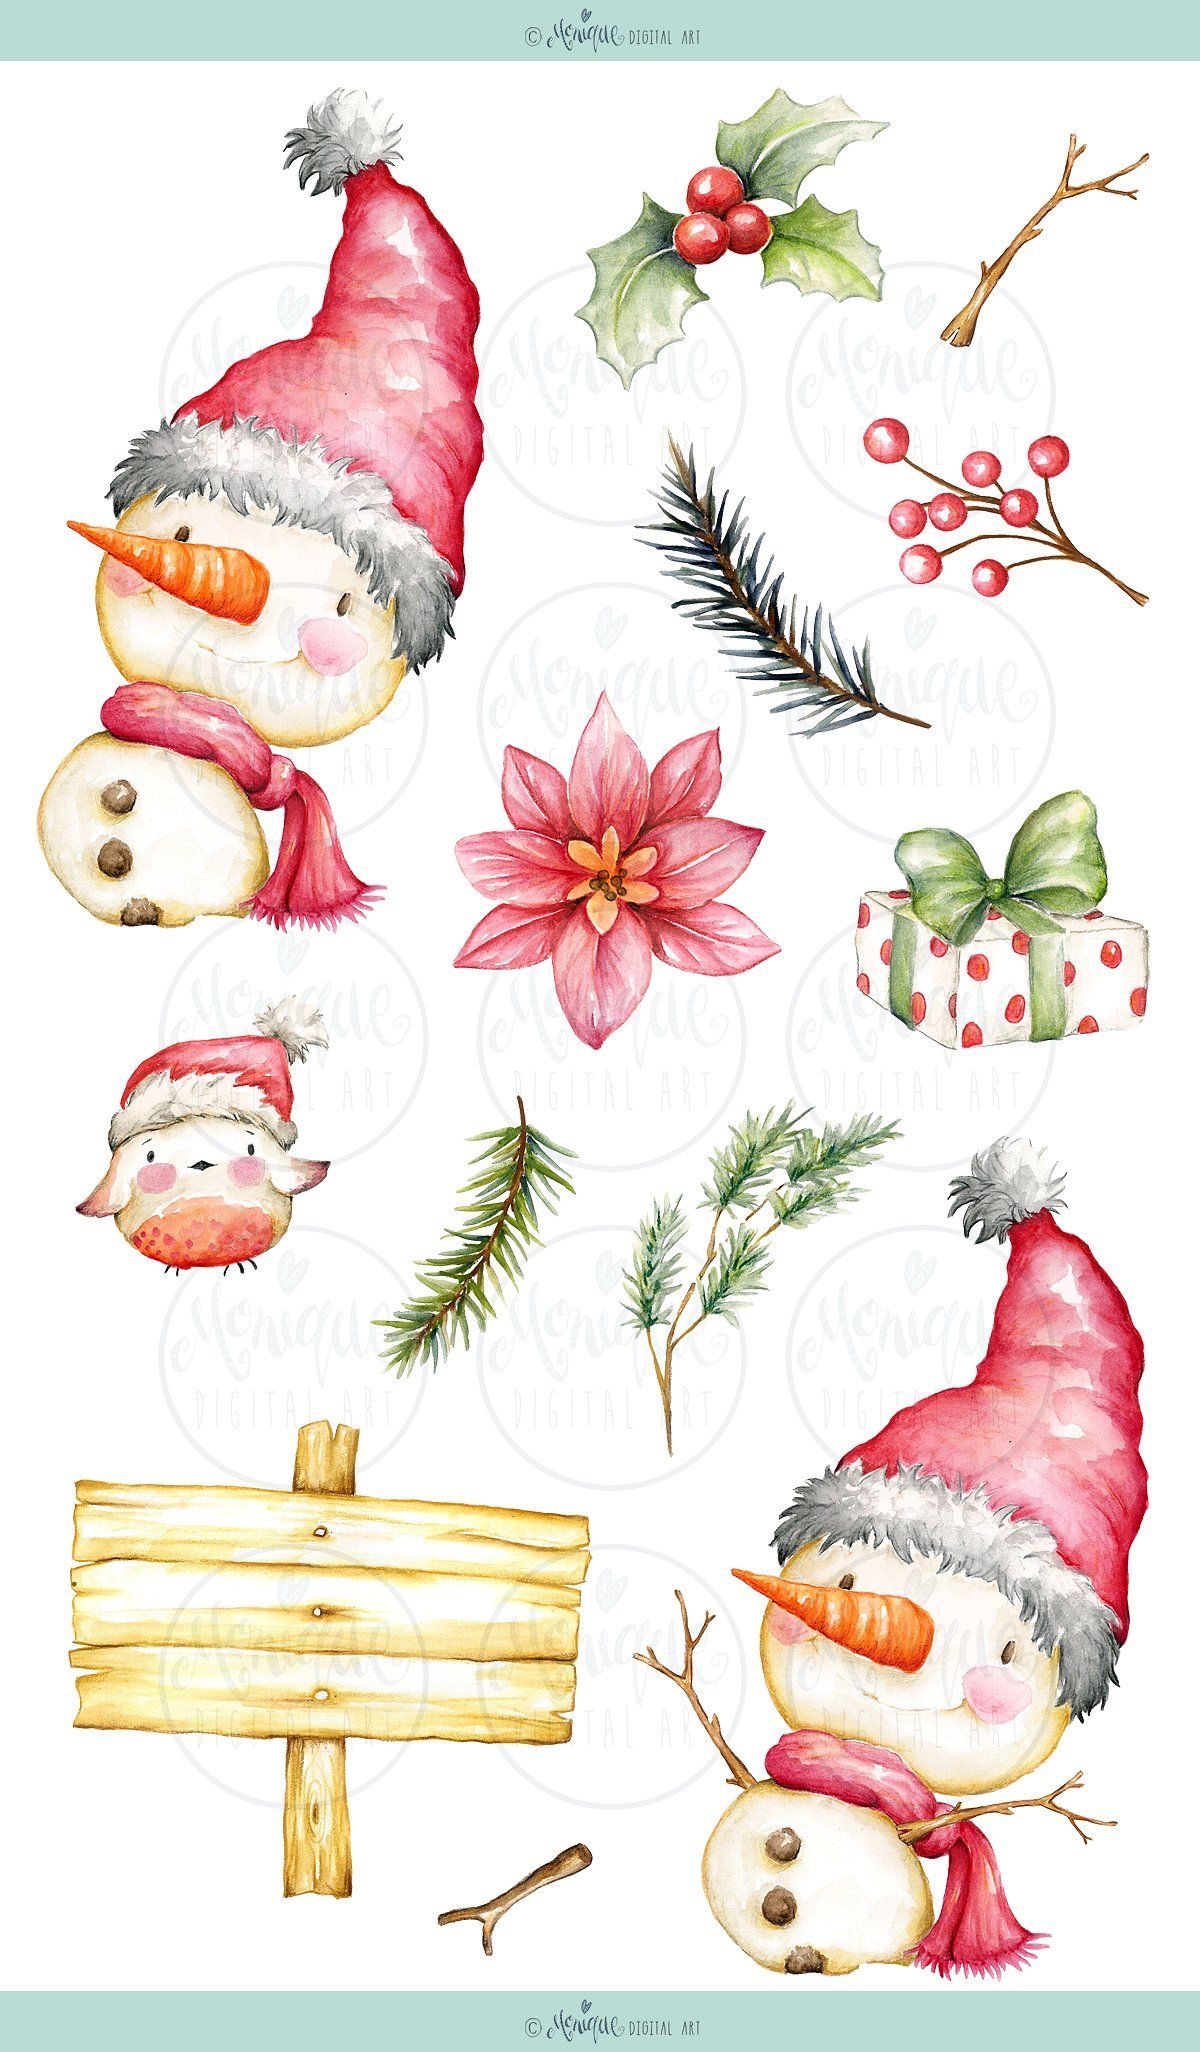 Snowman Clipart Watercolor items GORGEOUS Examples sale